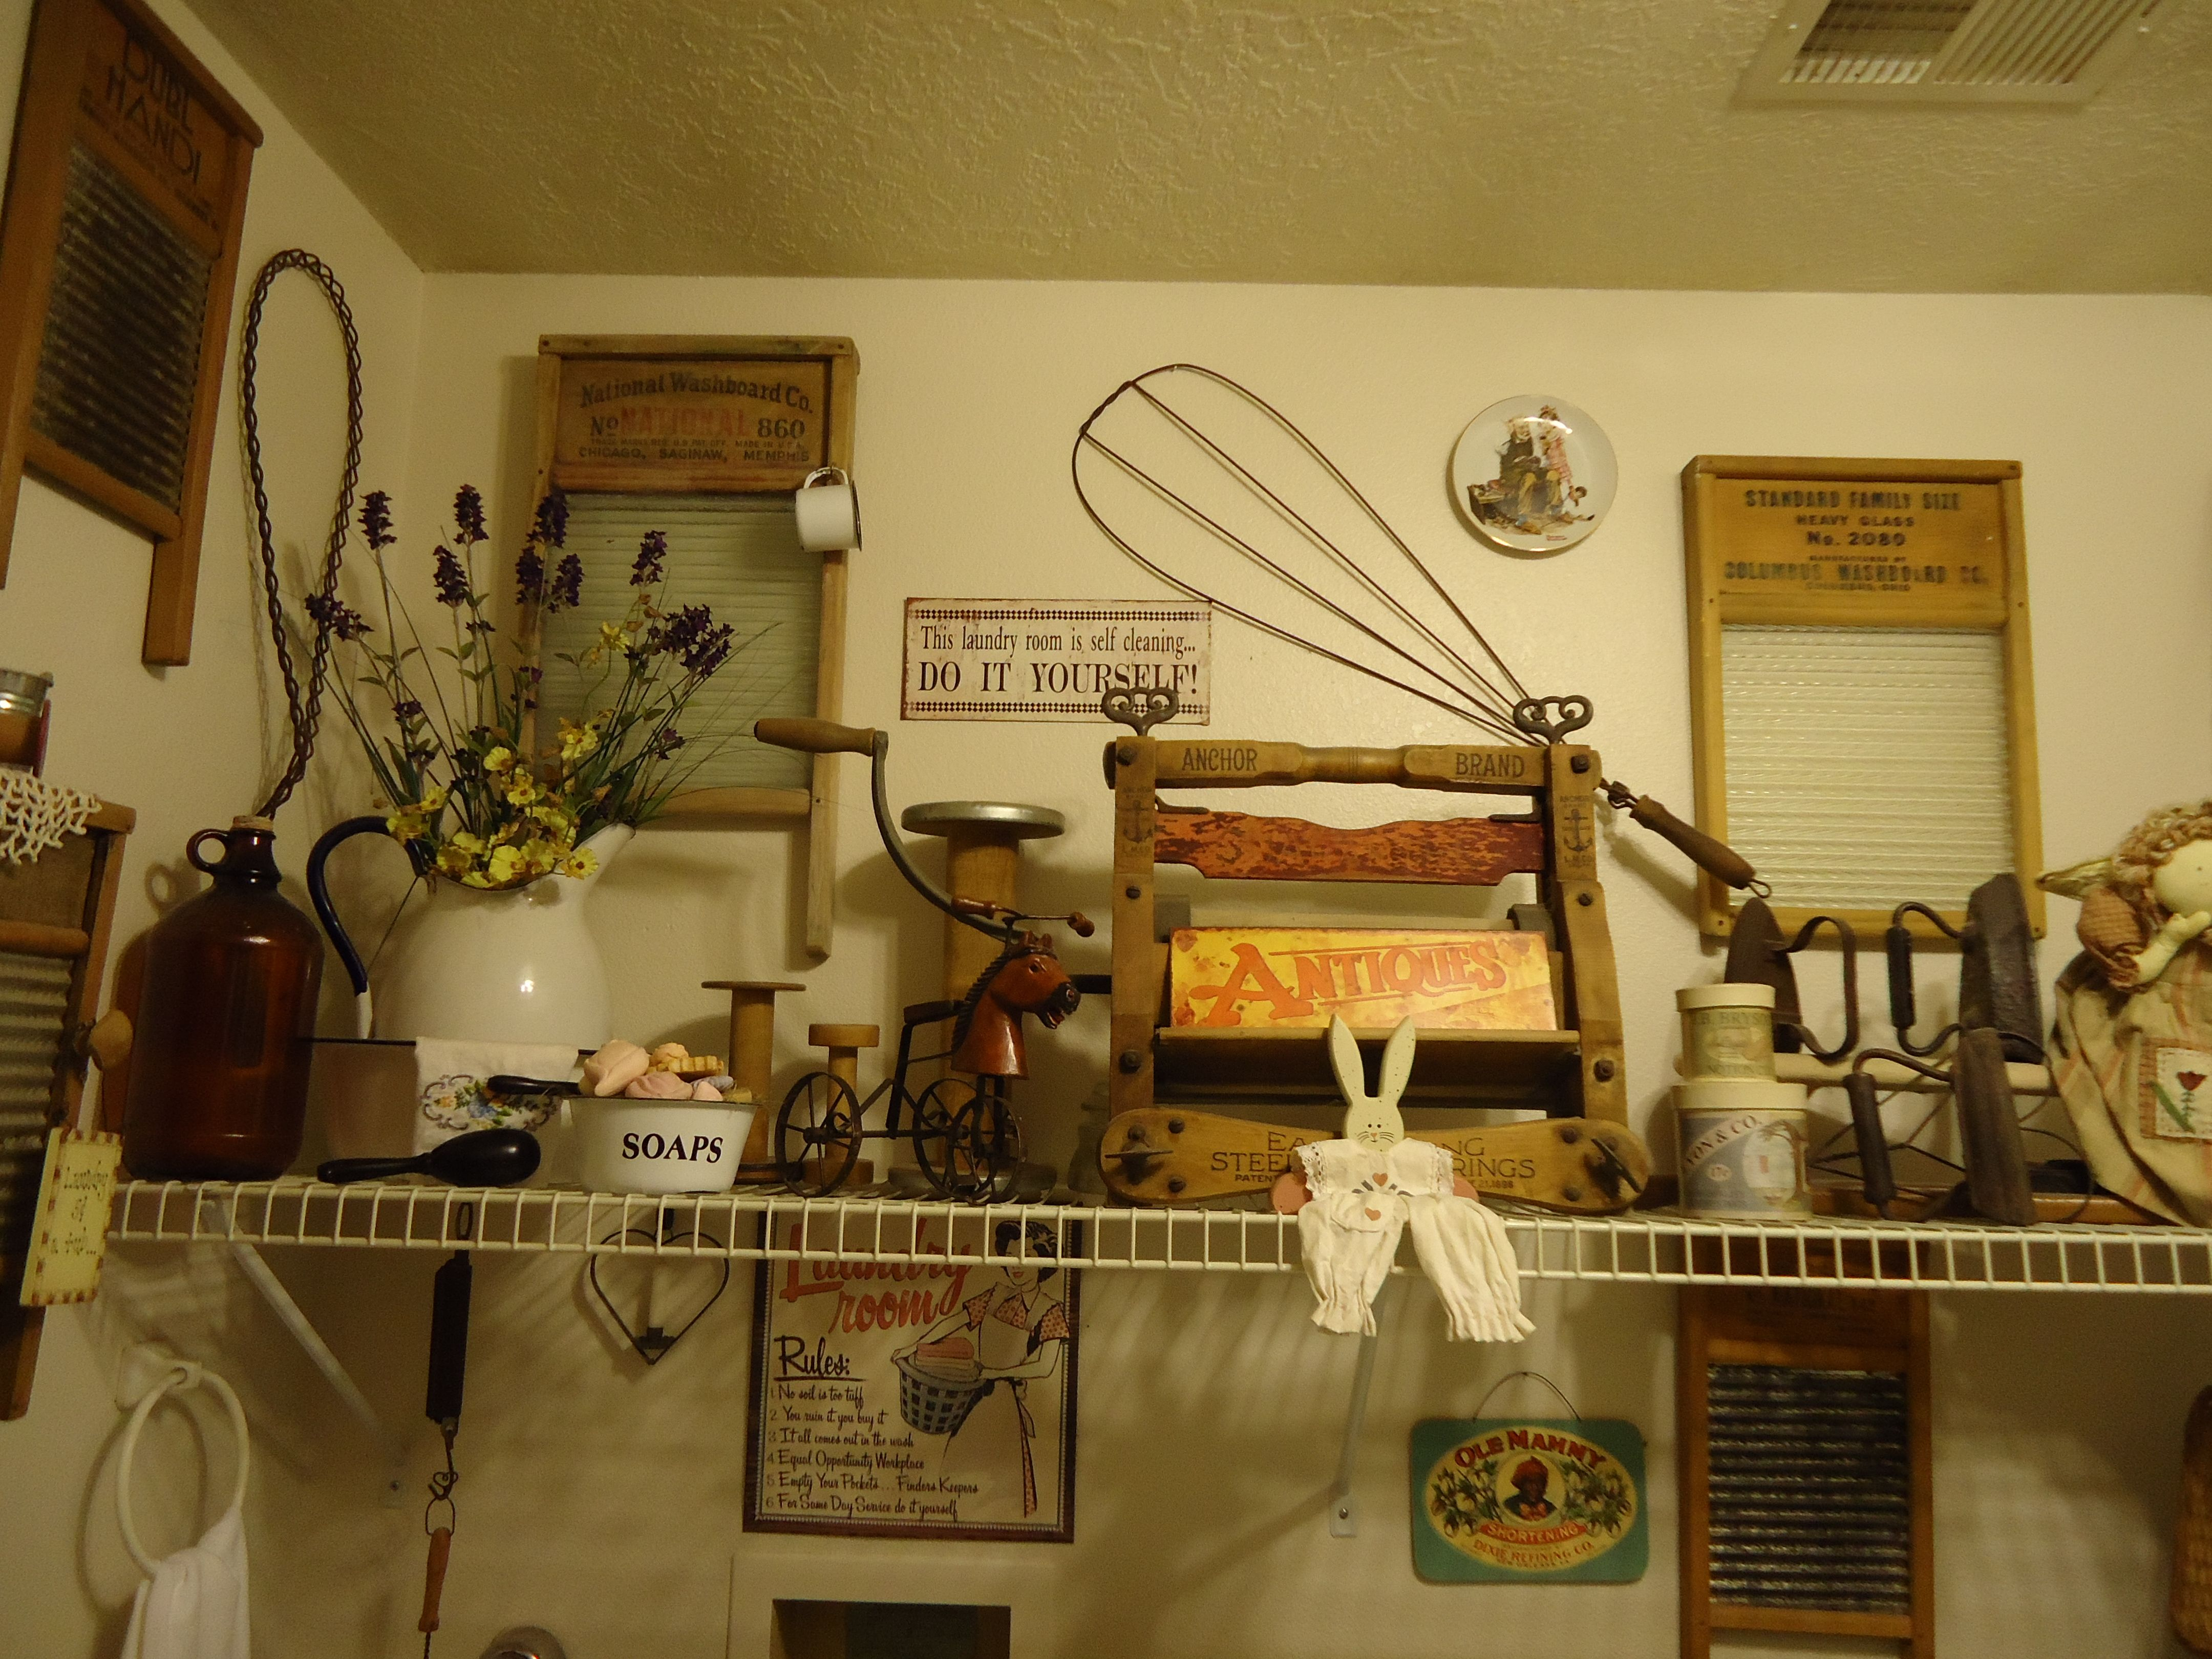 This Is My Laundry Room I Love All Things Vintage Vintage Laundry Room Primitive Laundry Rooms Vintage Laundry Room Decor